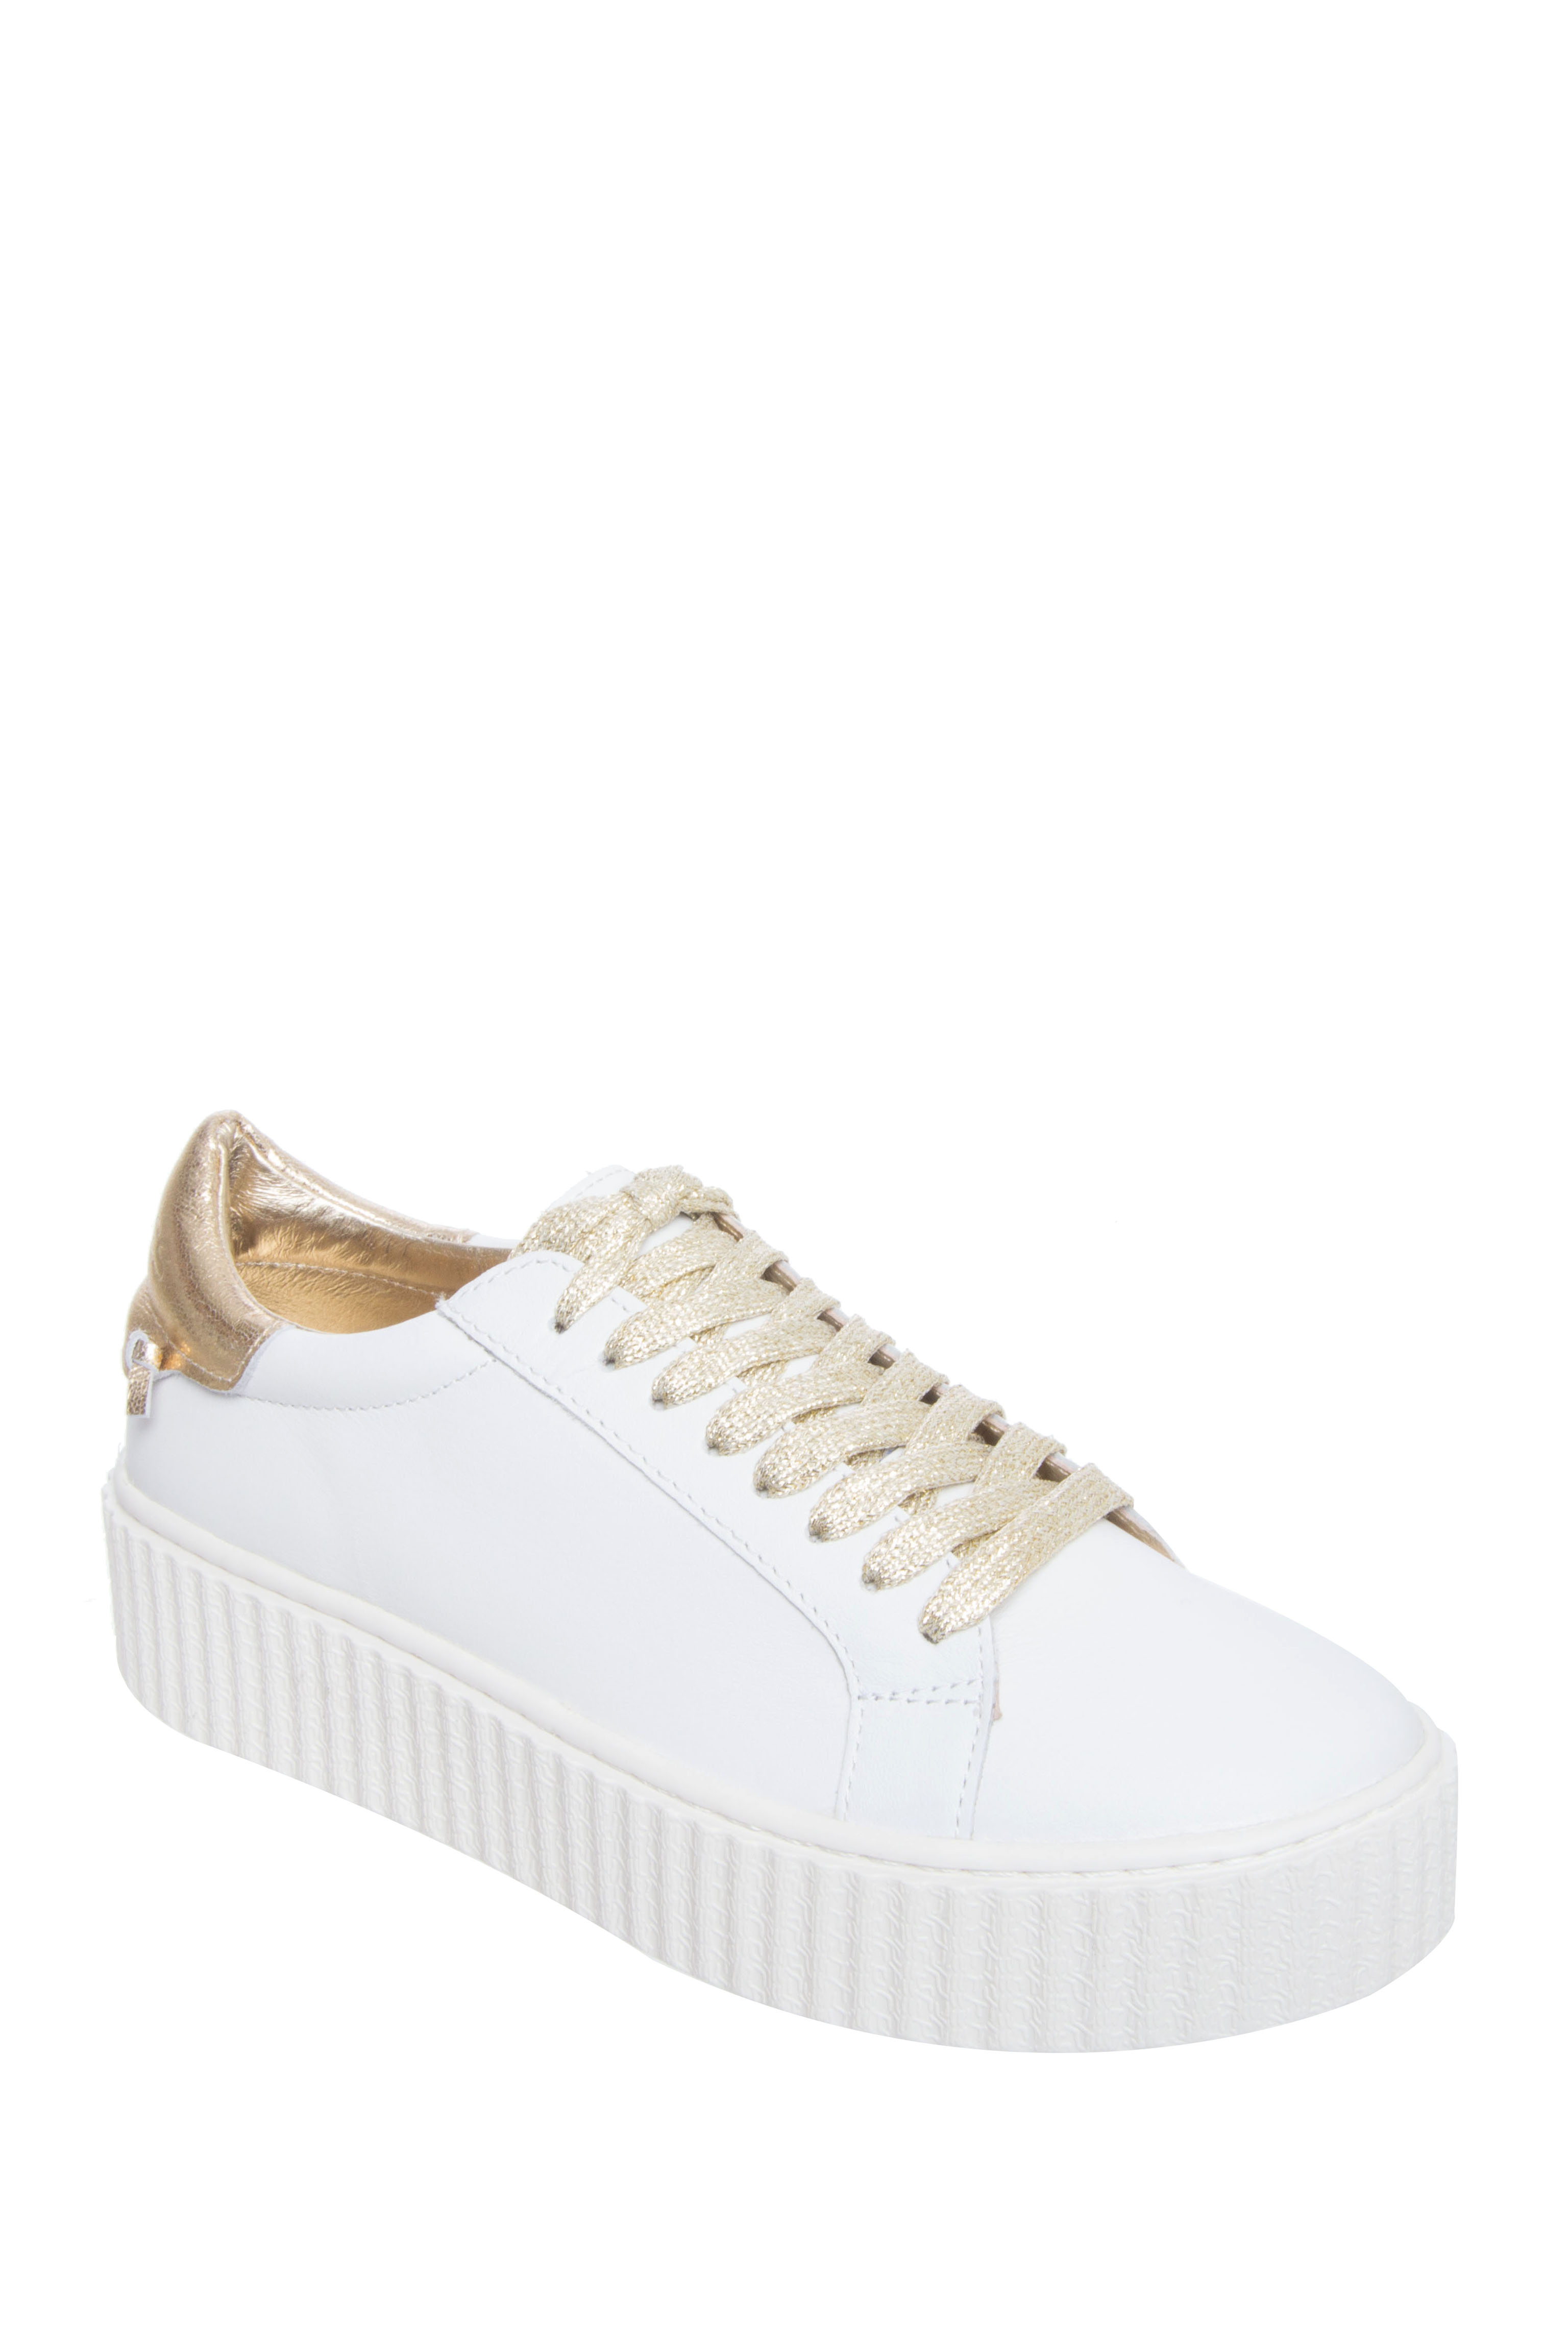 J Slides Parker Low Top Platform Sneakers - White / Platino Leather